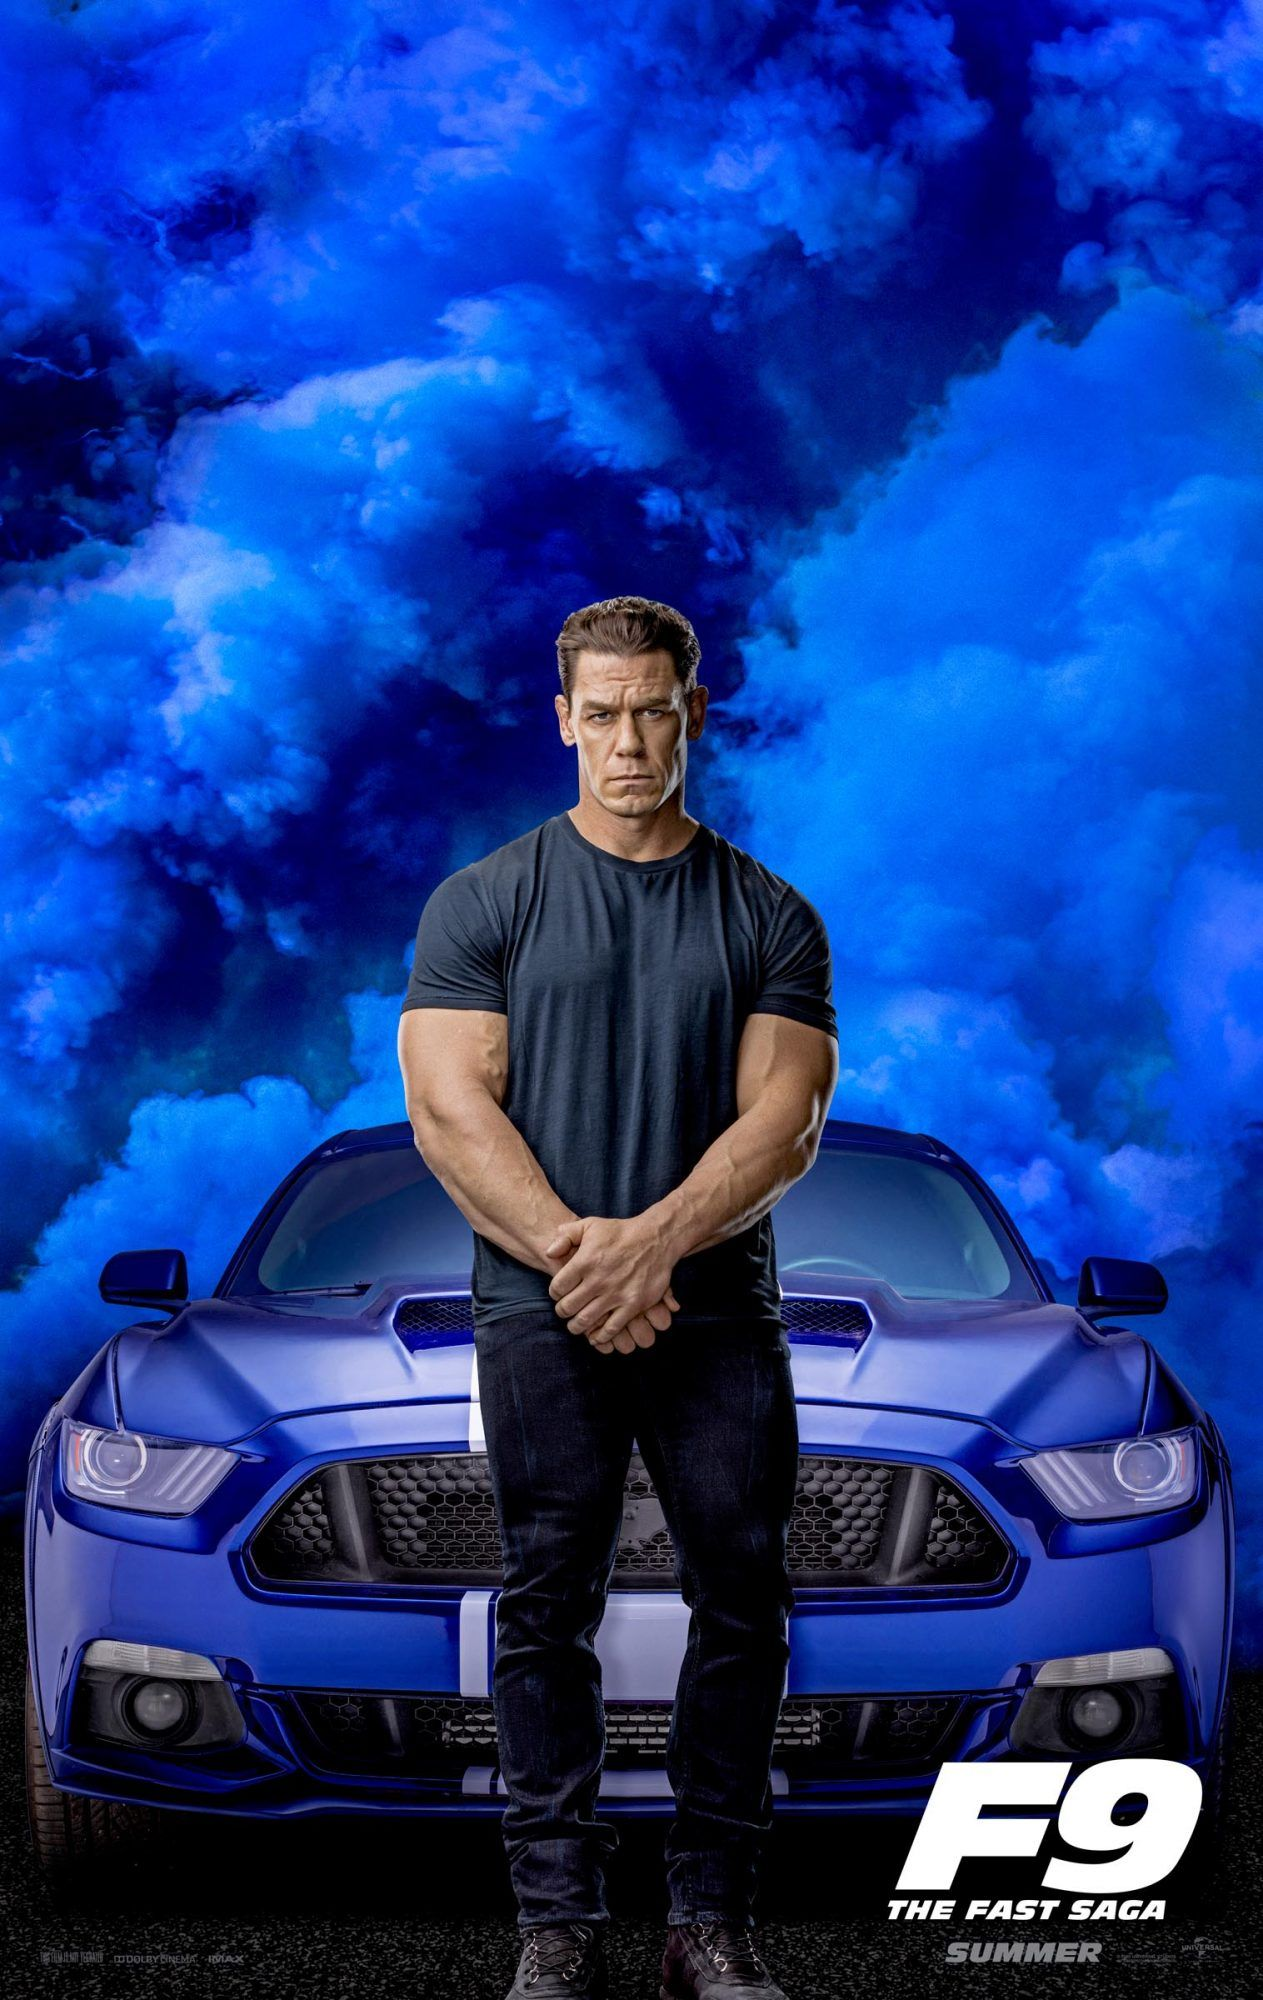 Vin Diesel, John Cena bring the smoke in 'Fast & Furious 9' posters in 2020  | Movie fast and furious, Fast and furious, Free movies online